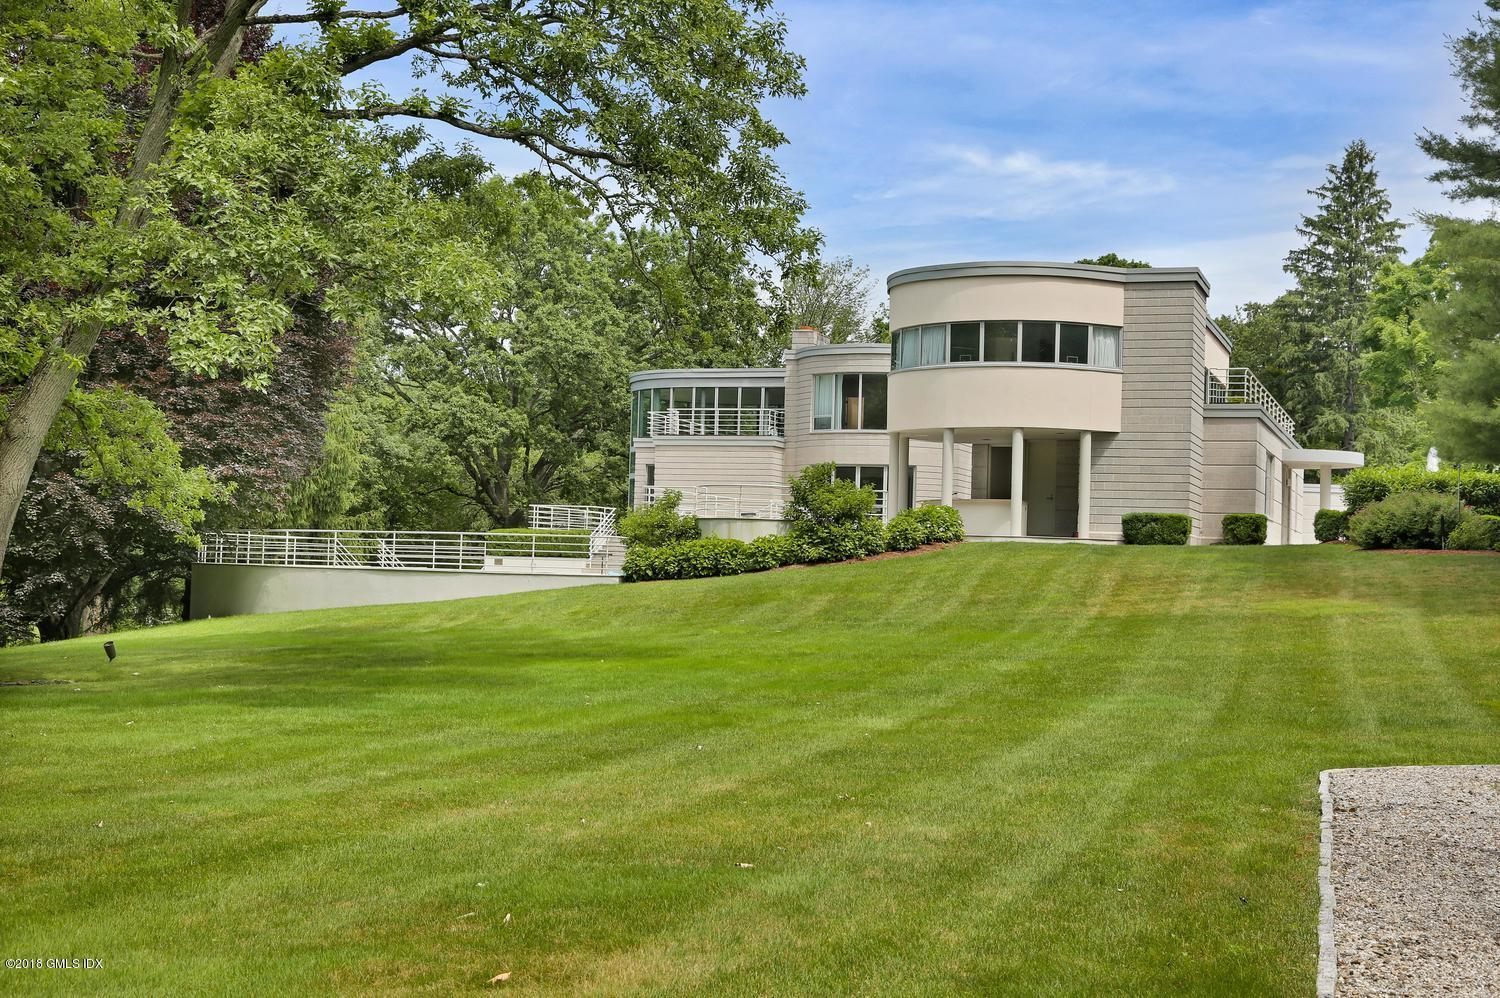 66 Cherry Valley Road,Greenwich,Connecticut 06831,6 Bedrooms Bedrooms,6 BathroomsBathrooms,Single family,Cherry Valley,103738